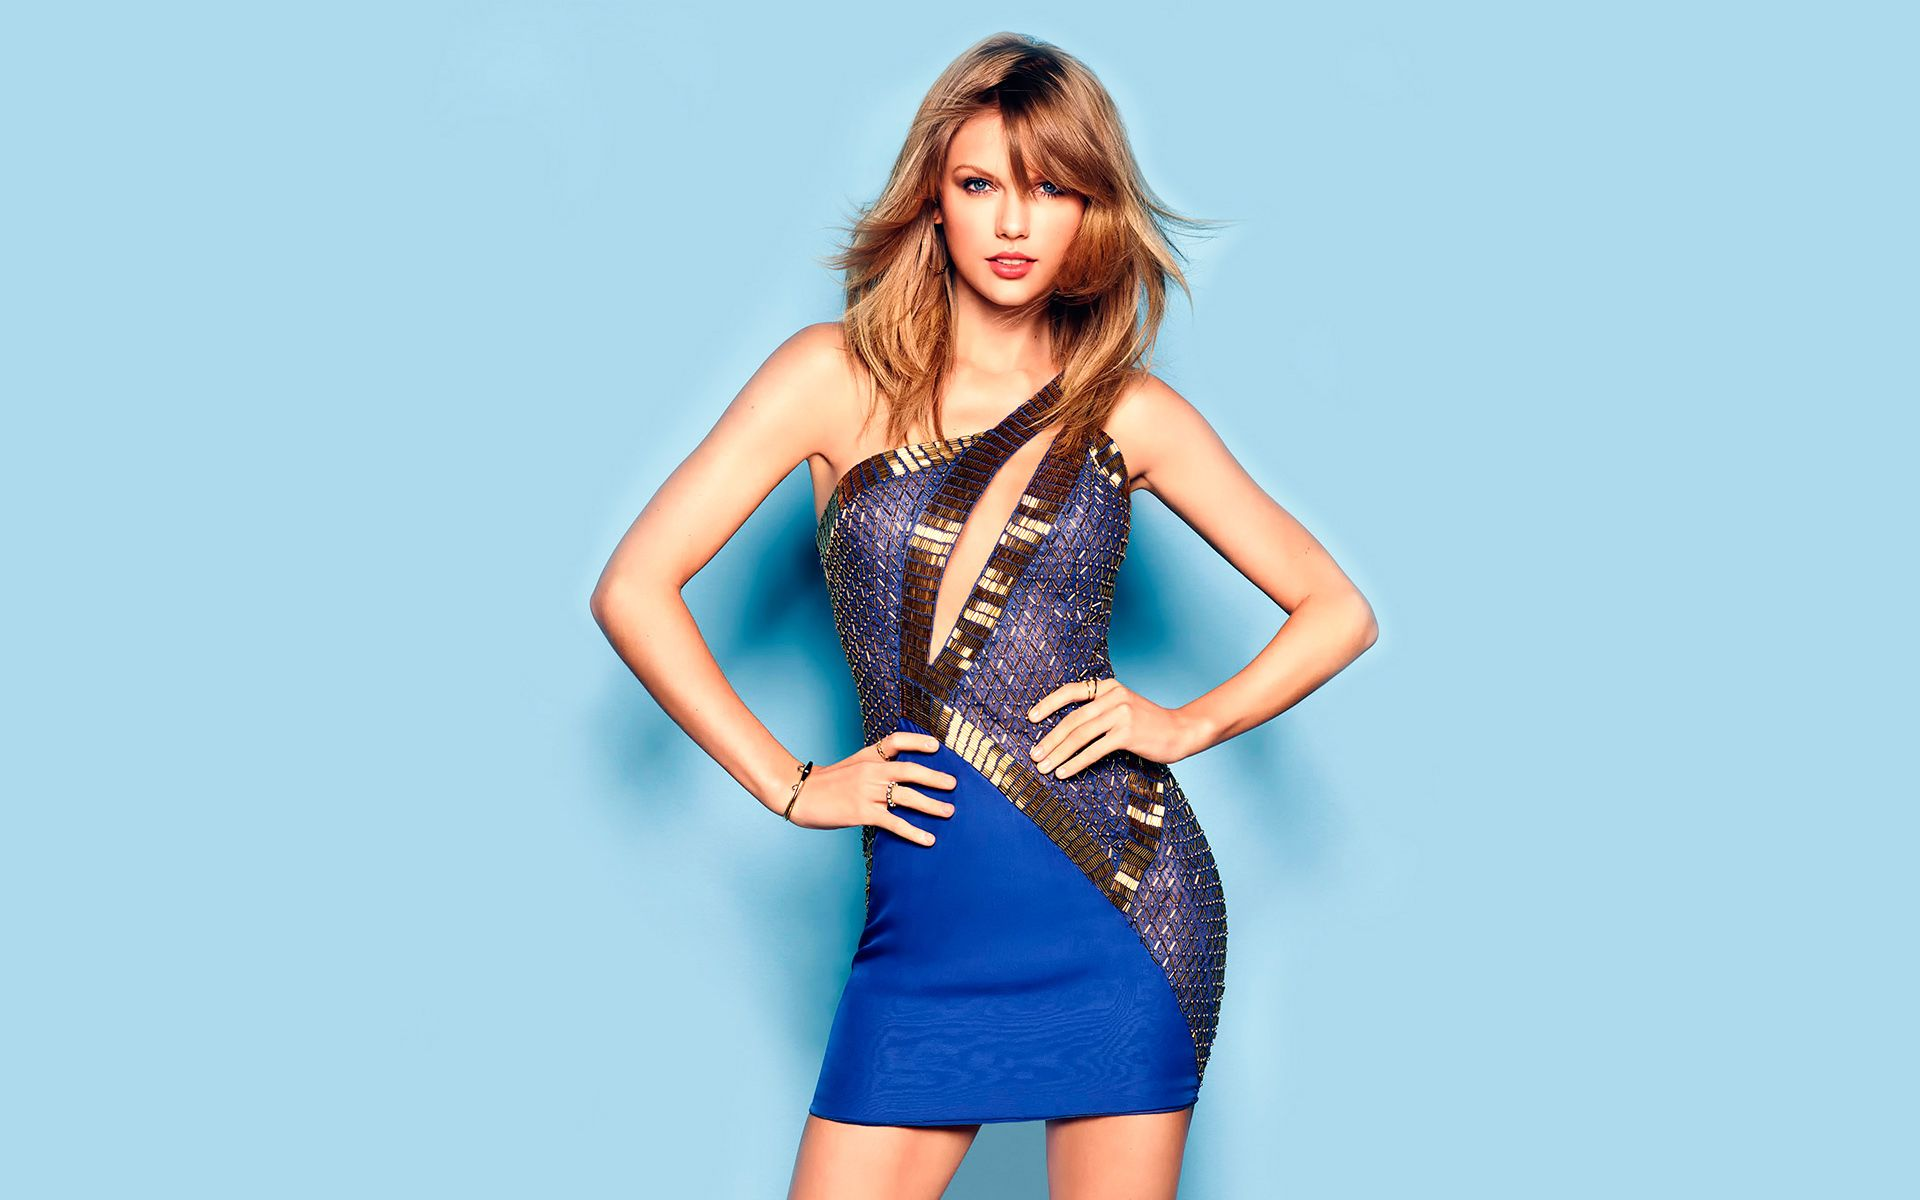 Taylor Swift Backgrounds, Pictures, Images